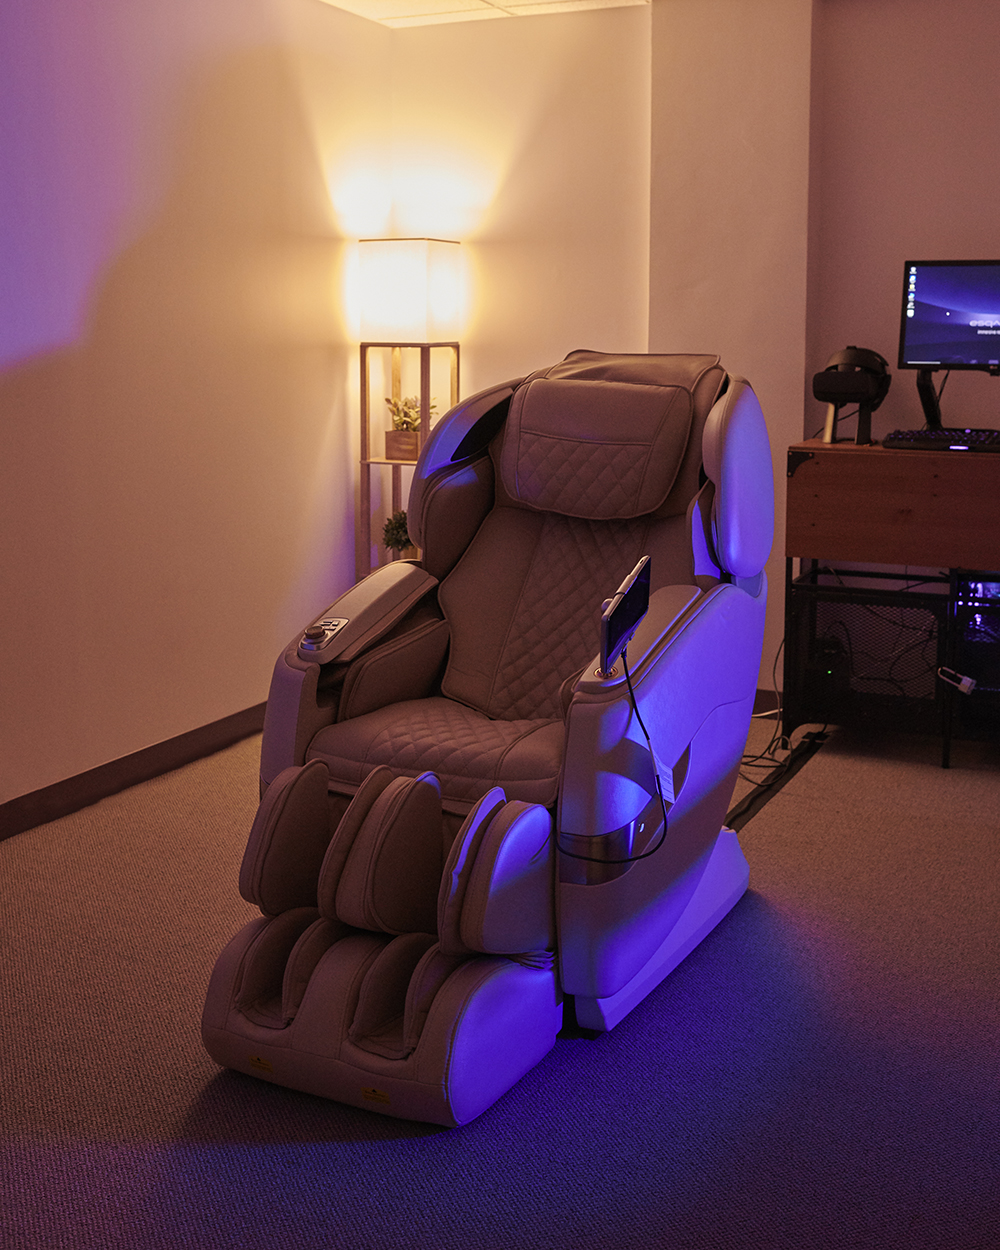 Esqapes combines automated massages with virtual reality to transport guests to a place of relaxation.